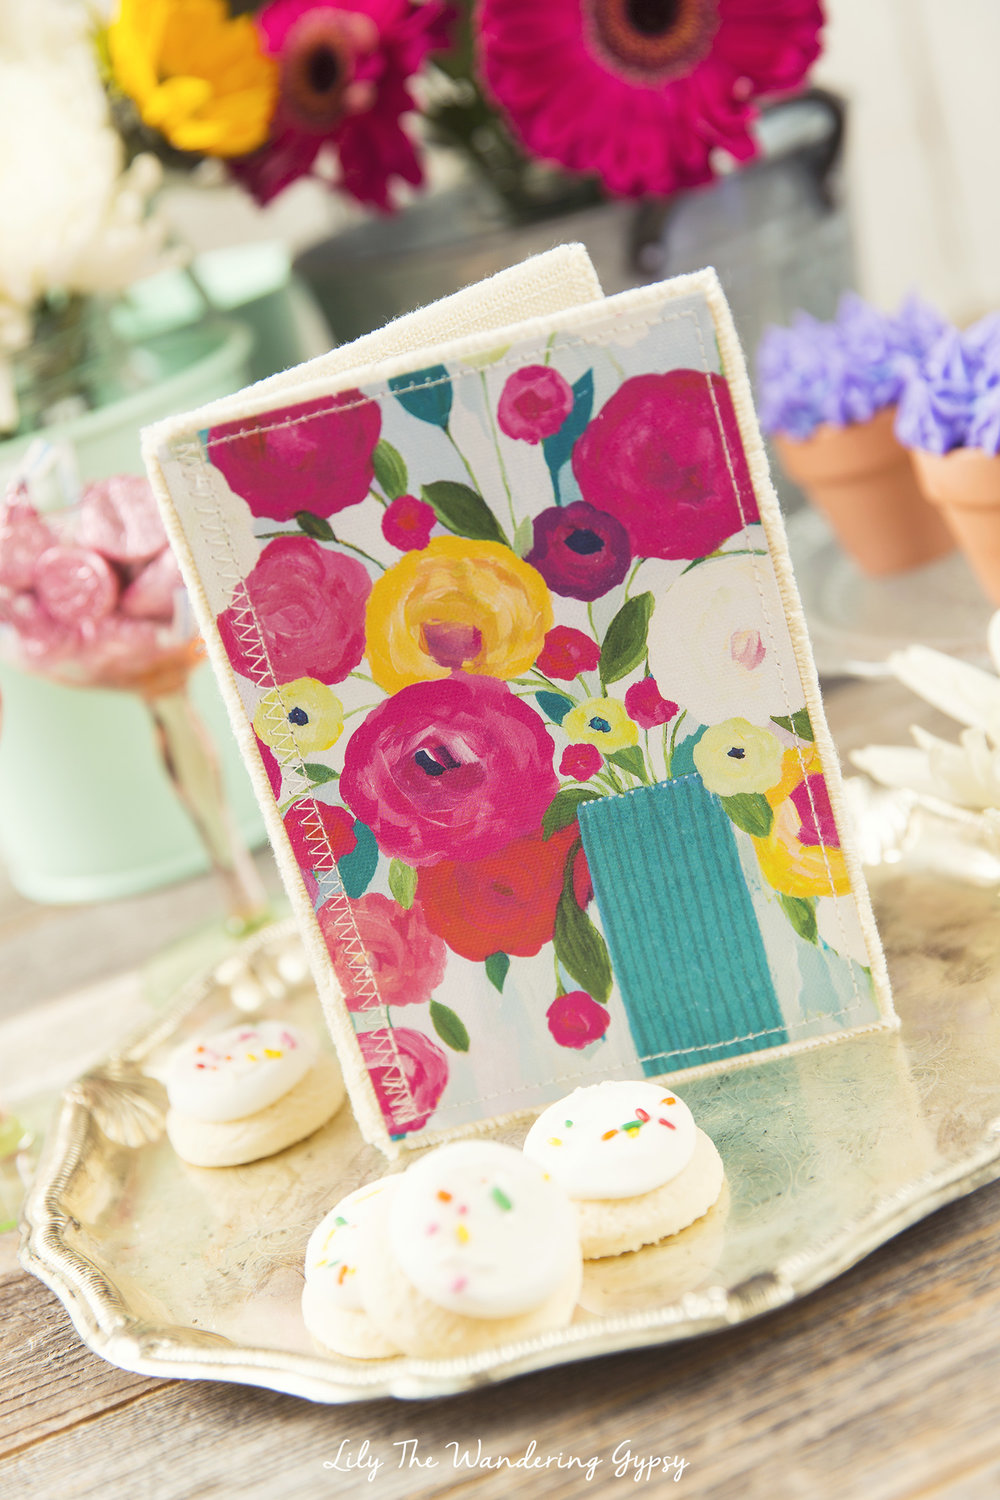 Cute Mother's Day Gift Ideas #HallmarkForMom